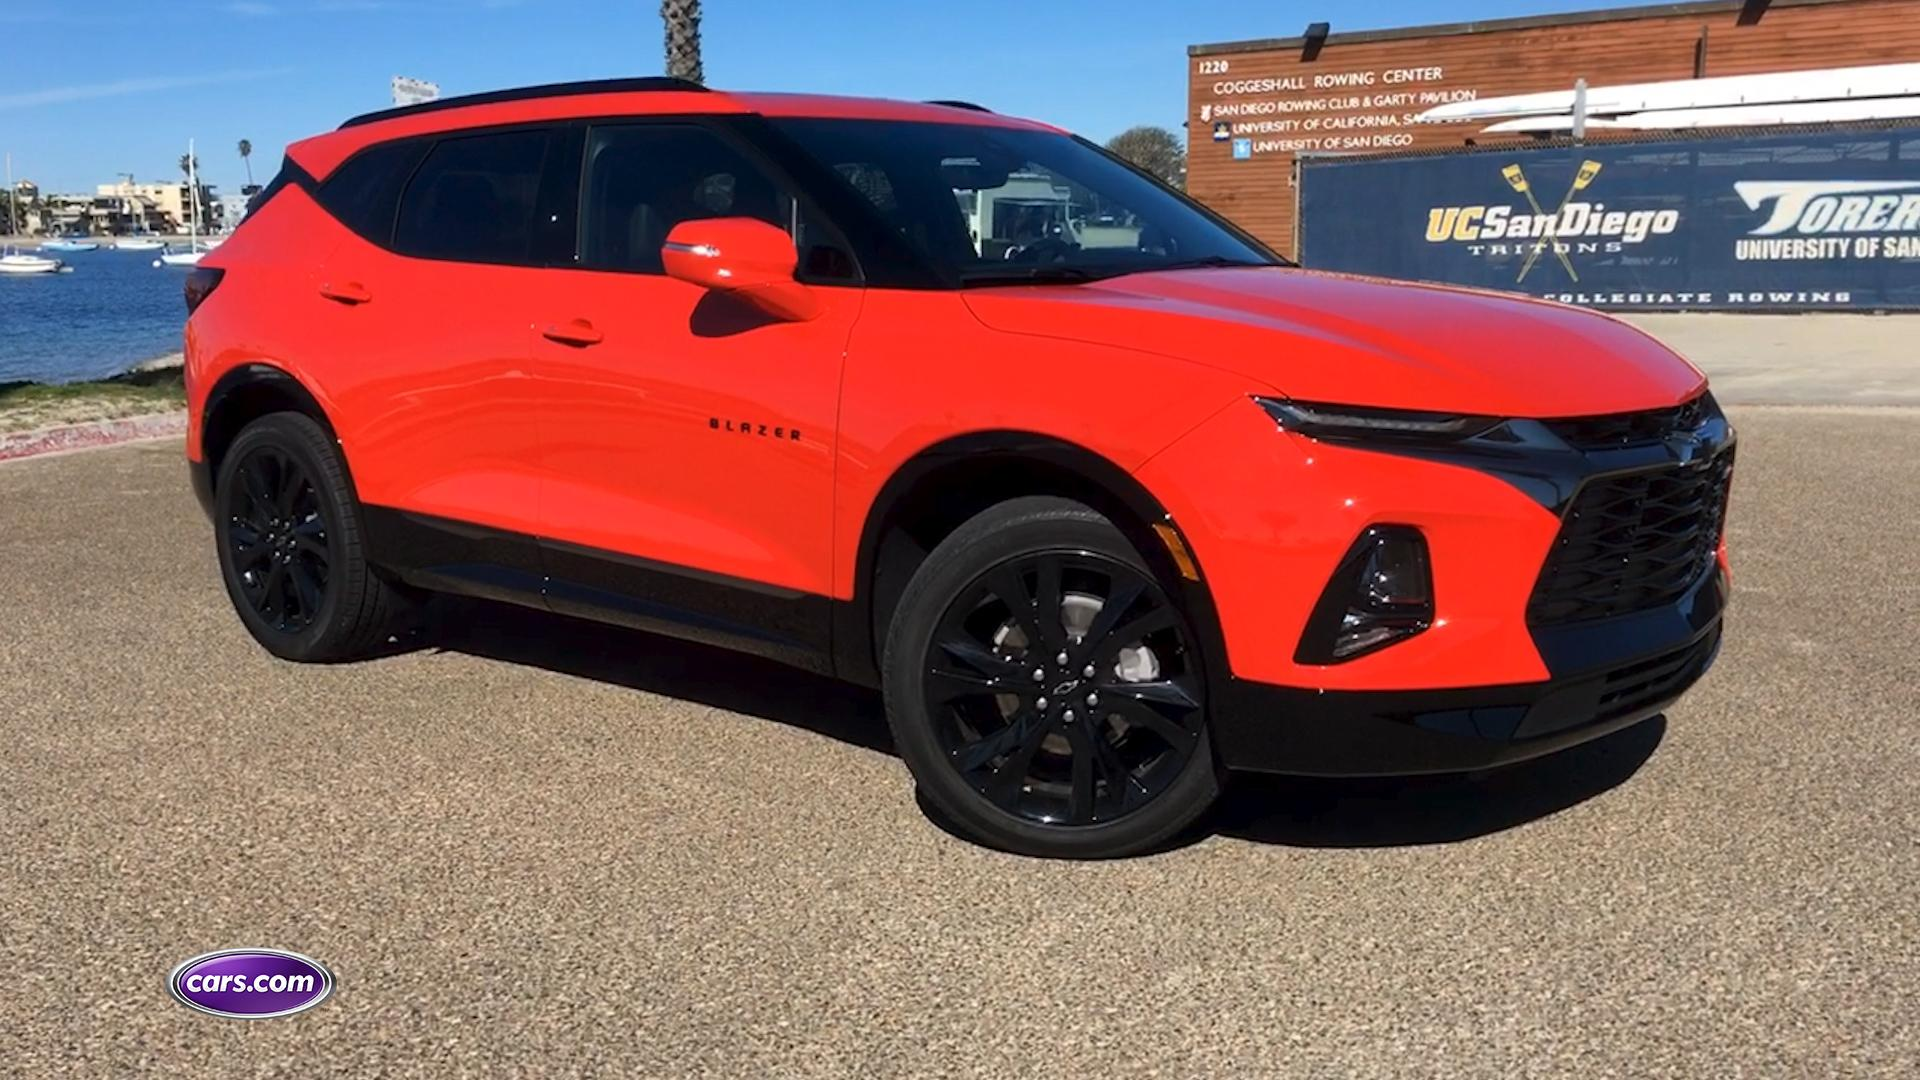 2019 Chevrolet Blazer First Drive: Going for Style Over ...